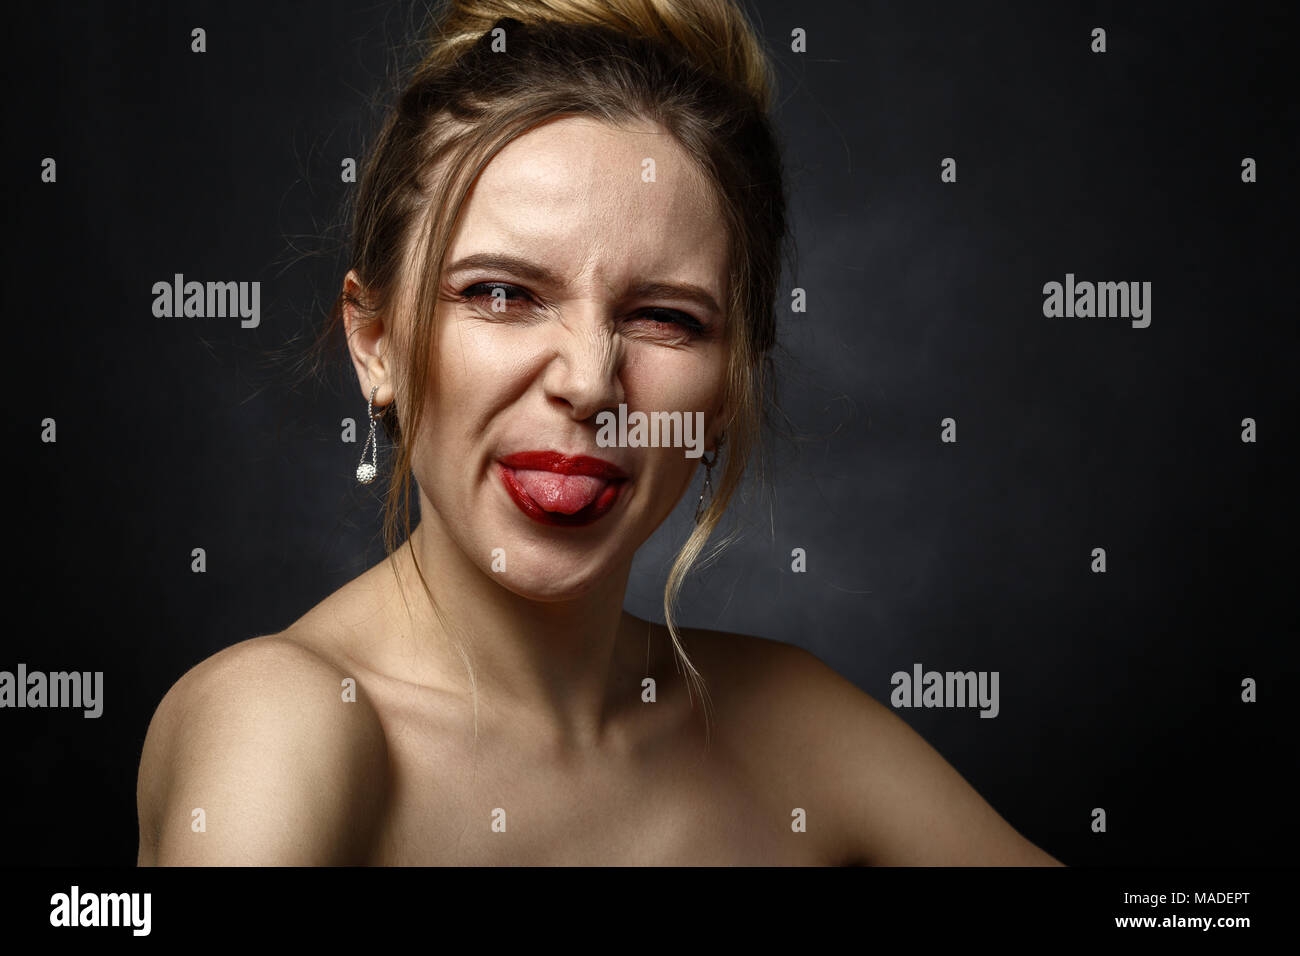 fun woman grimacing show her tongue on black background - Stock Image